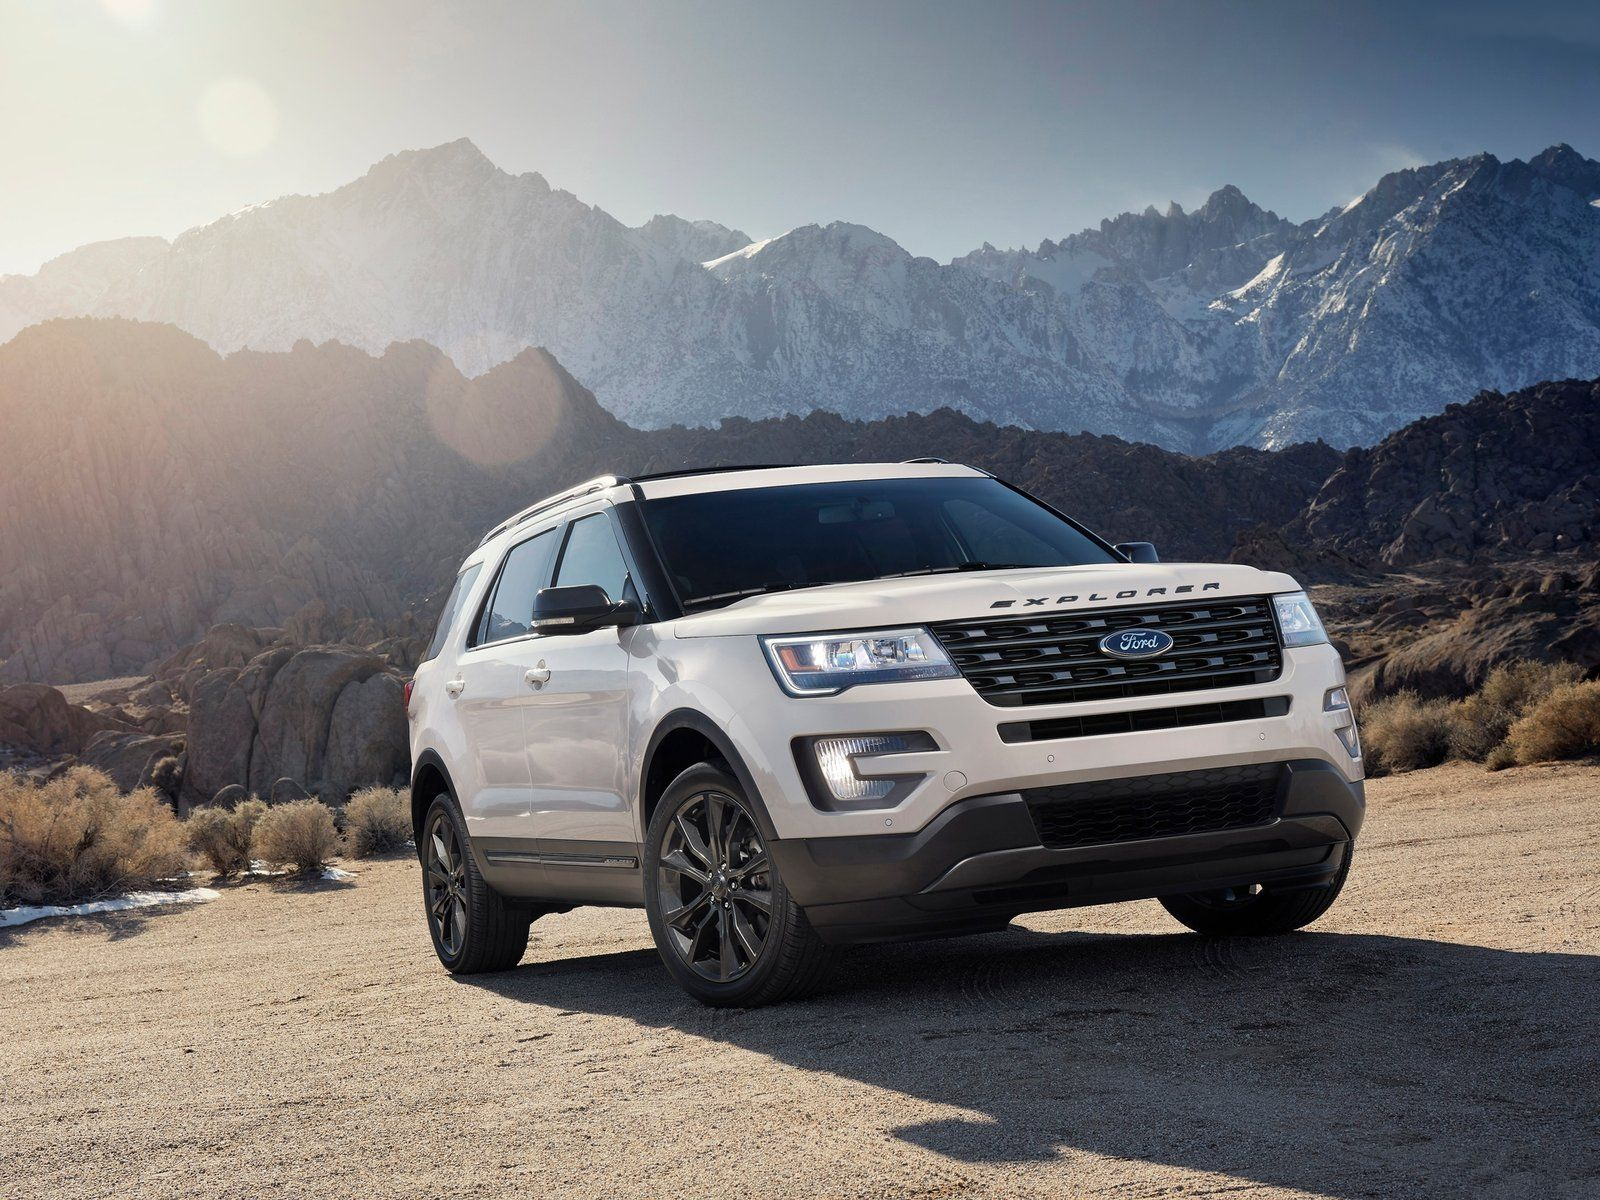 2017 Ford Explorer Xlt Sport Appearance Package Muscle Cars Pickup